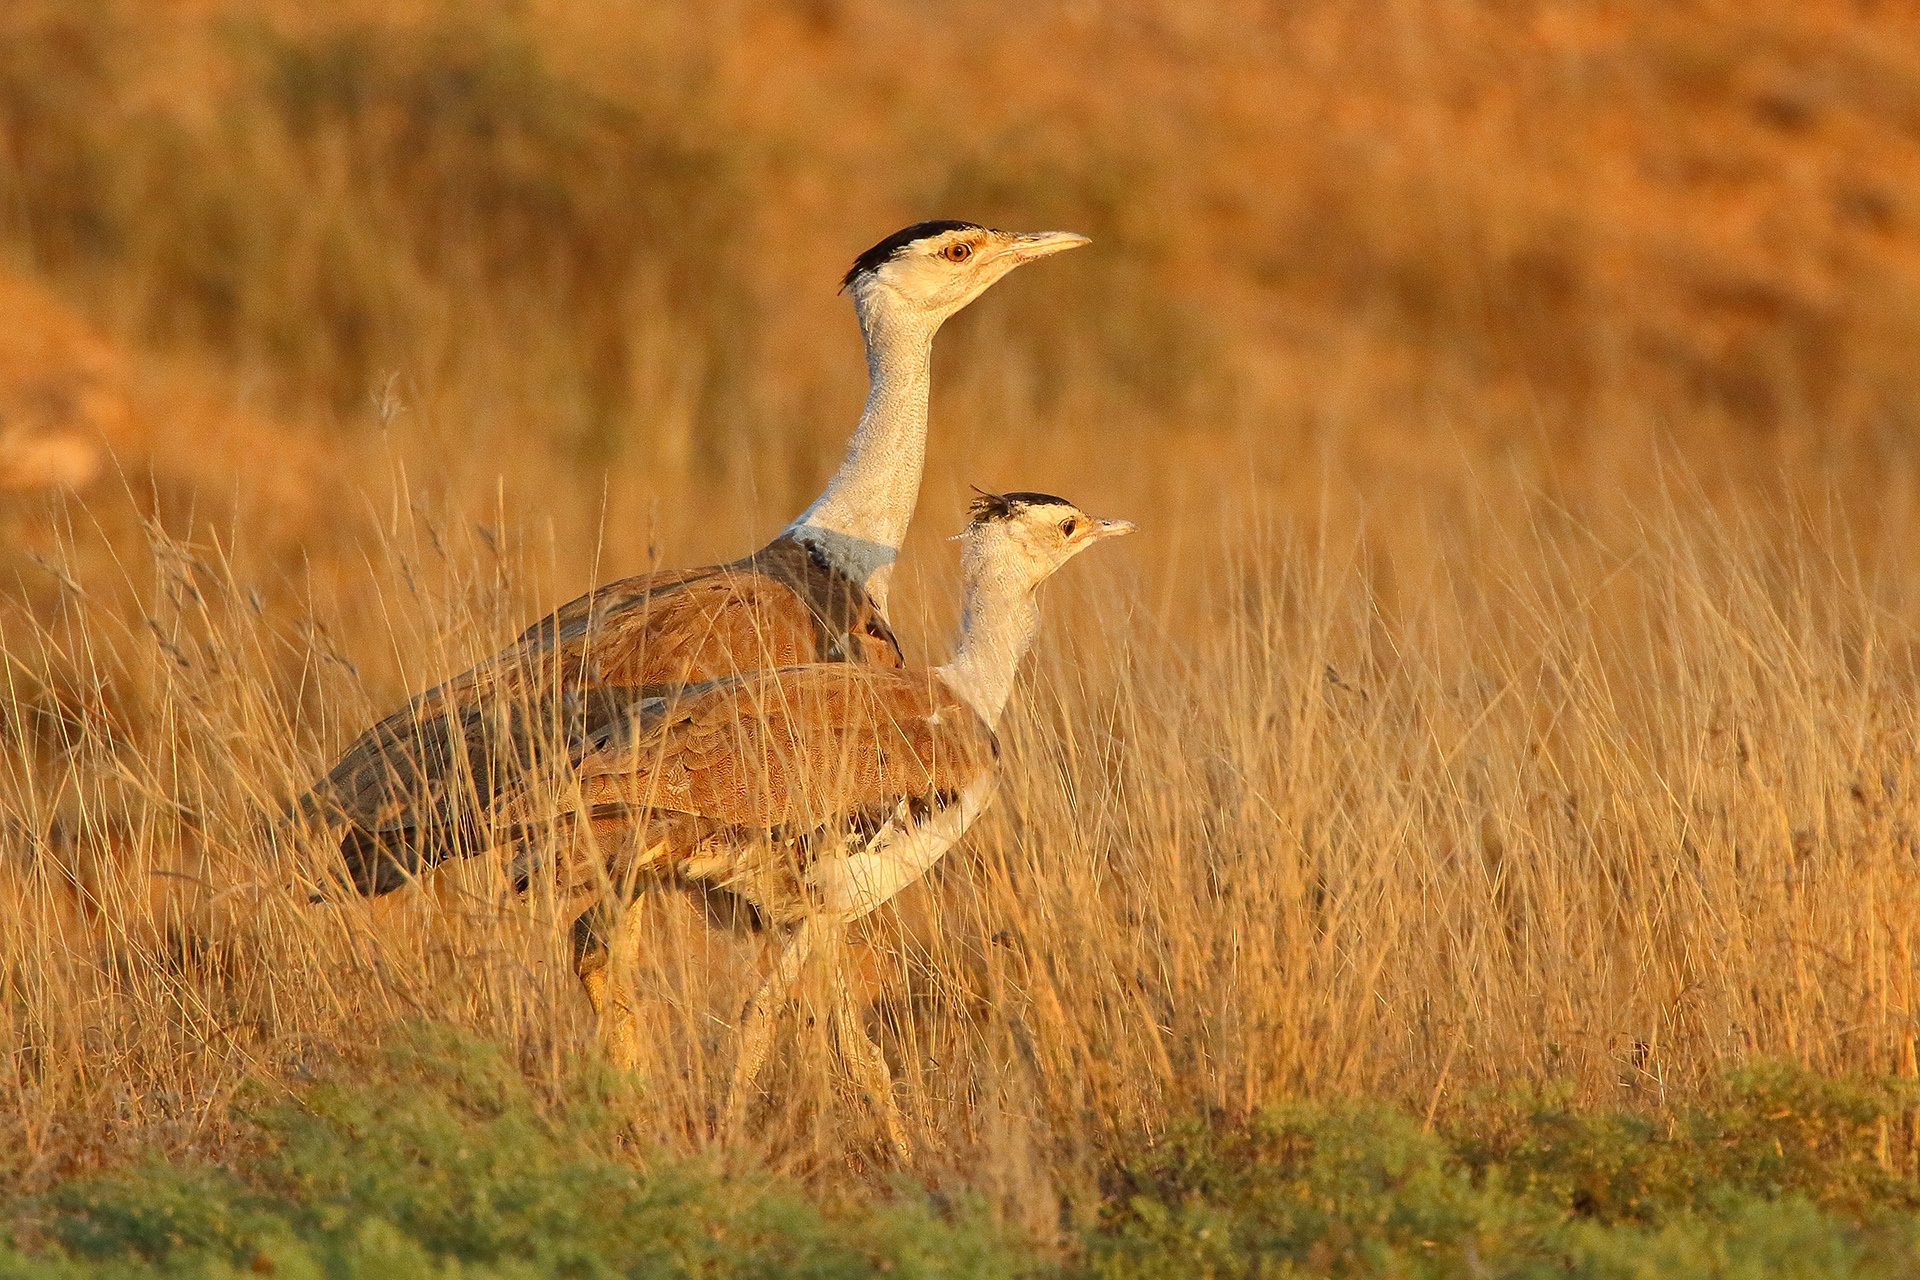 "In response to the dwindling numbers of the great Indian bustard, the Wildlife Institute of India and the Rajasthan Forest Department started a conservation breeding programme, where they are currently observing and scientifically raising ten birds. ""In 3-4 years, we have to develop a stock of 35-40 captive birds to kickstart conservation breeding,"" says Dr Rahmani, ""so the birds can be released in another 5-6 years' time.""  Photo: Devesh Gadhavi"